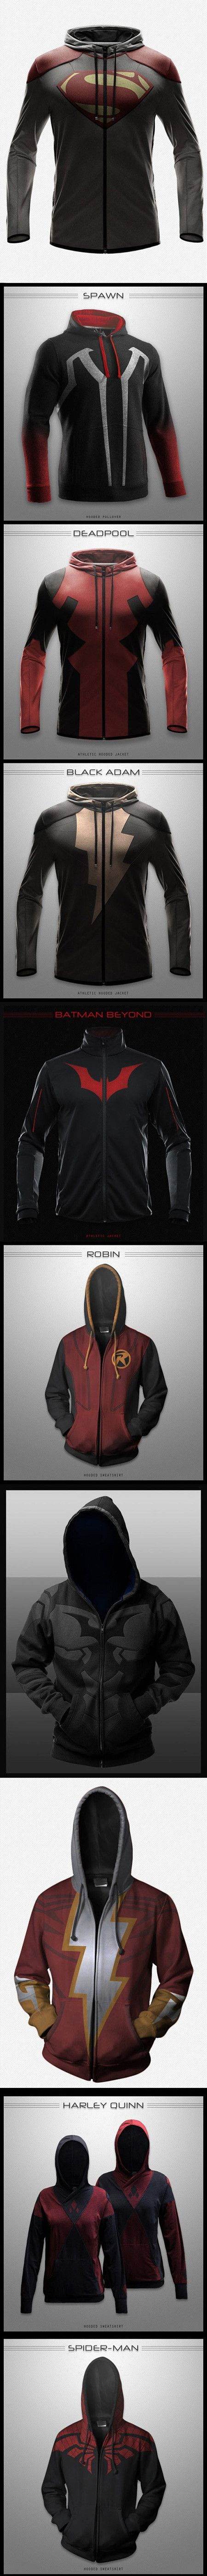 Most hoodies look boring, these geeky designs are definitely not.